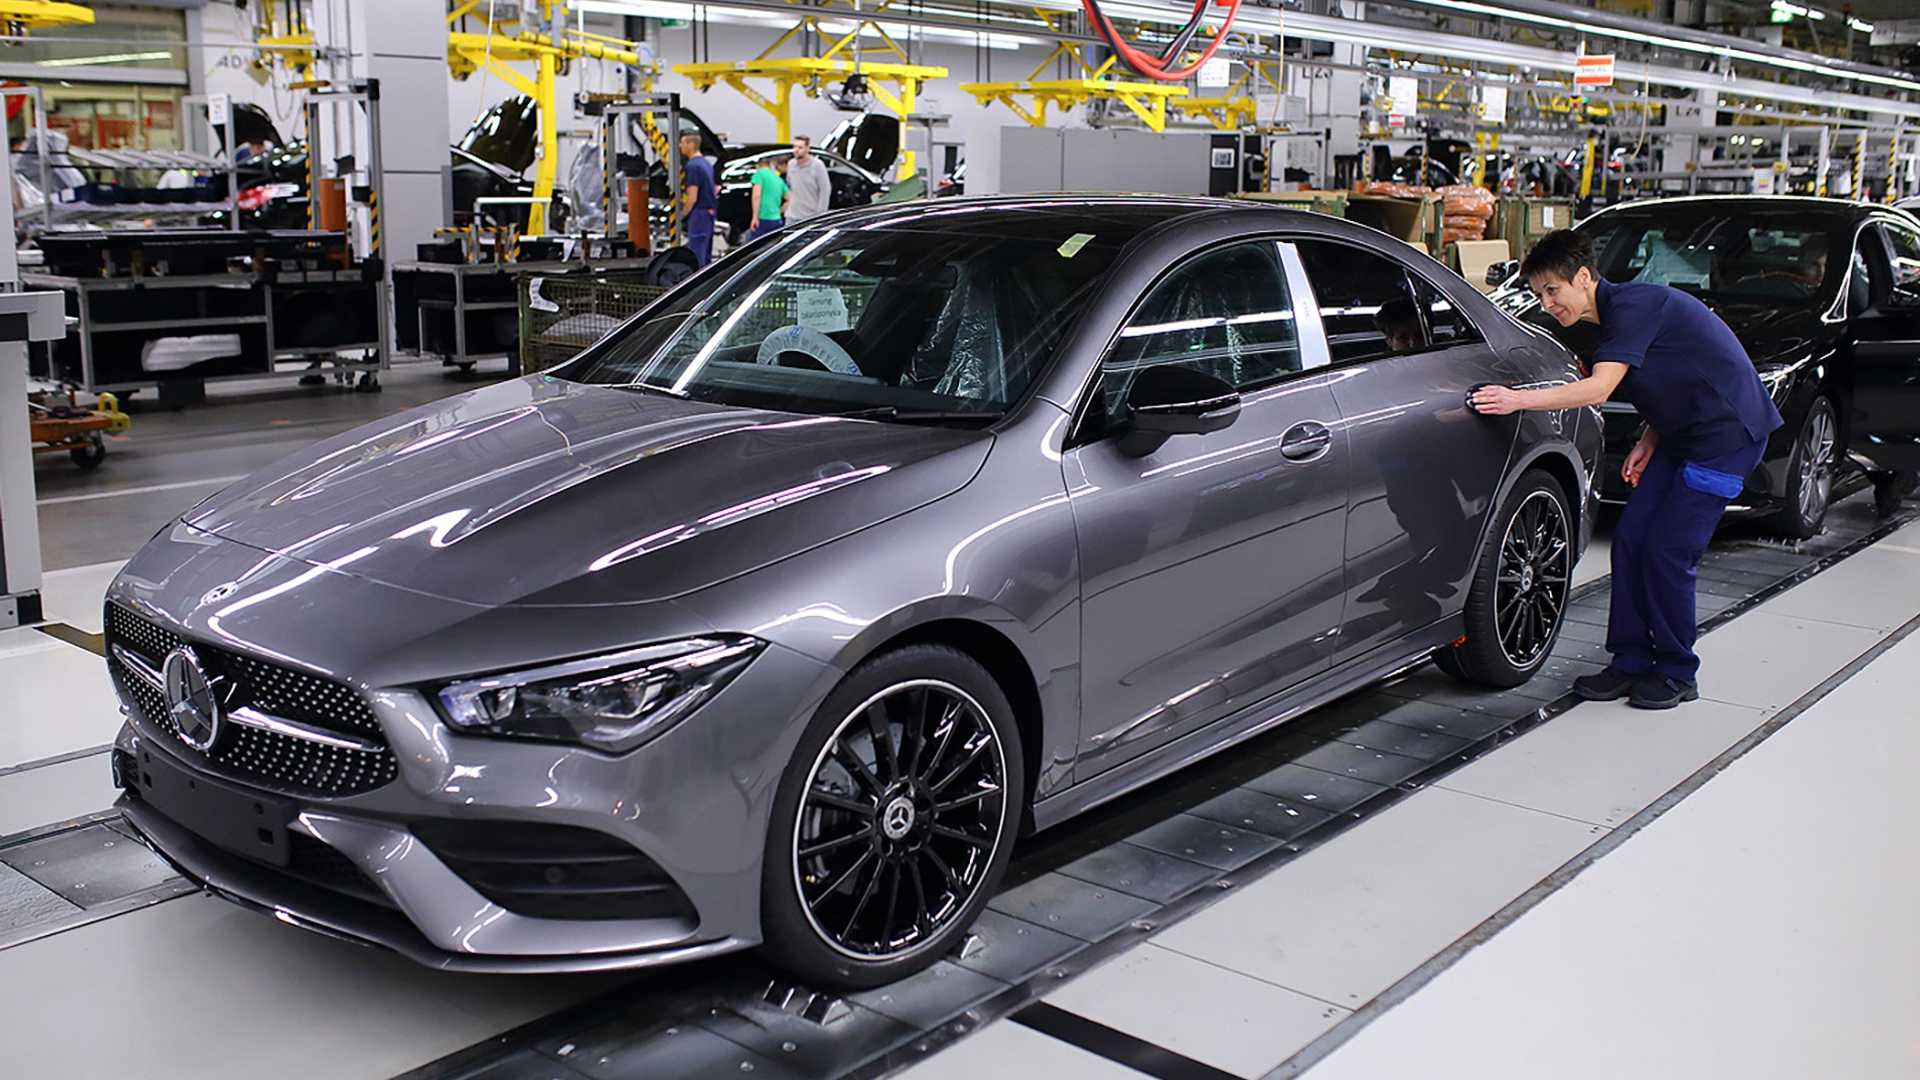 2020 Mercedes-Benz CLA-Class production starts in Hungary